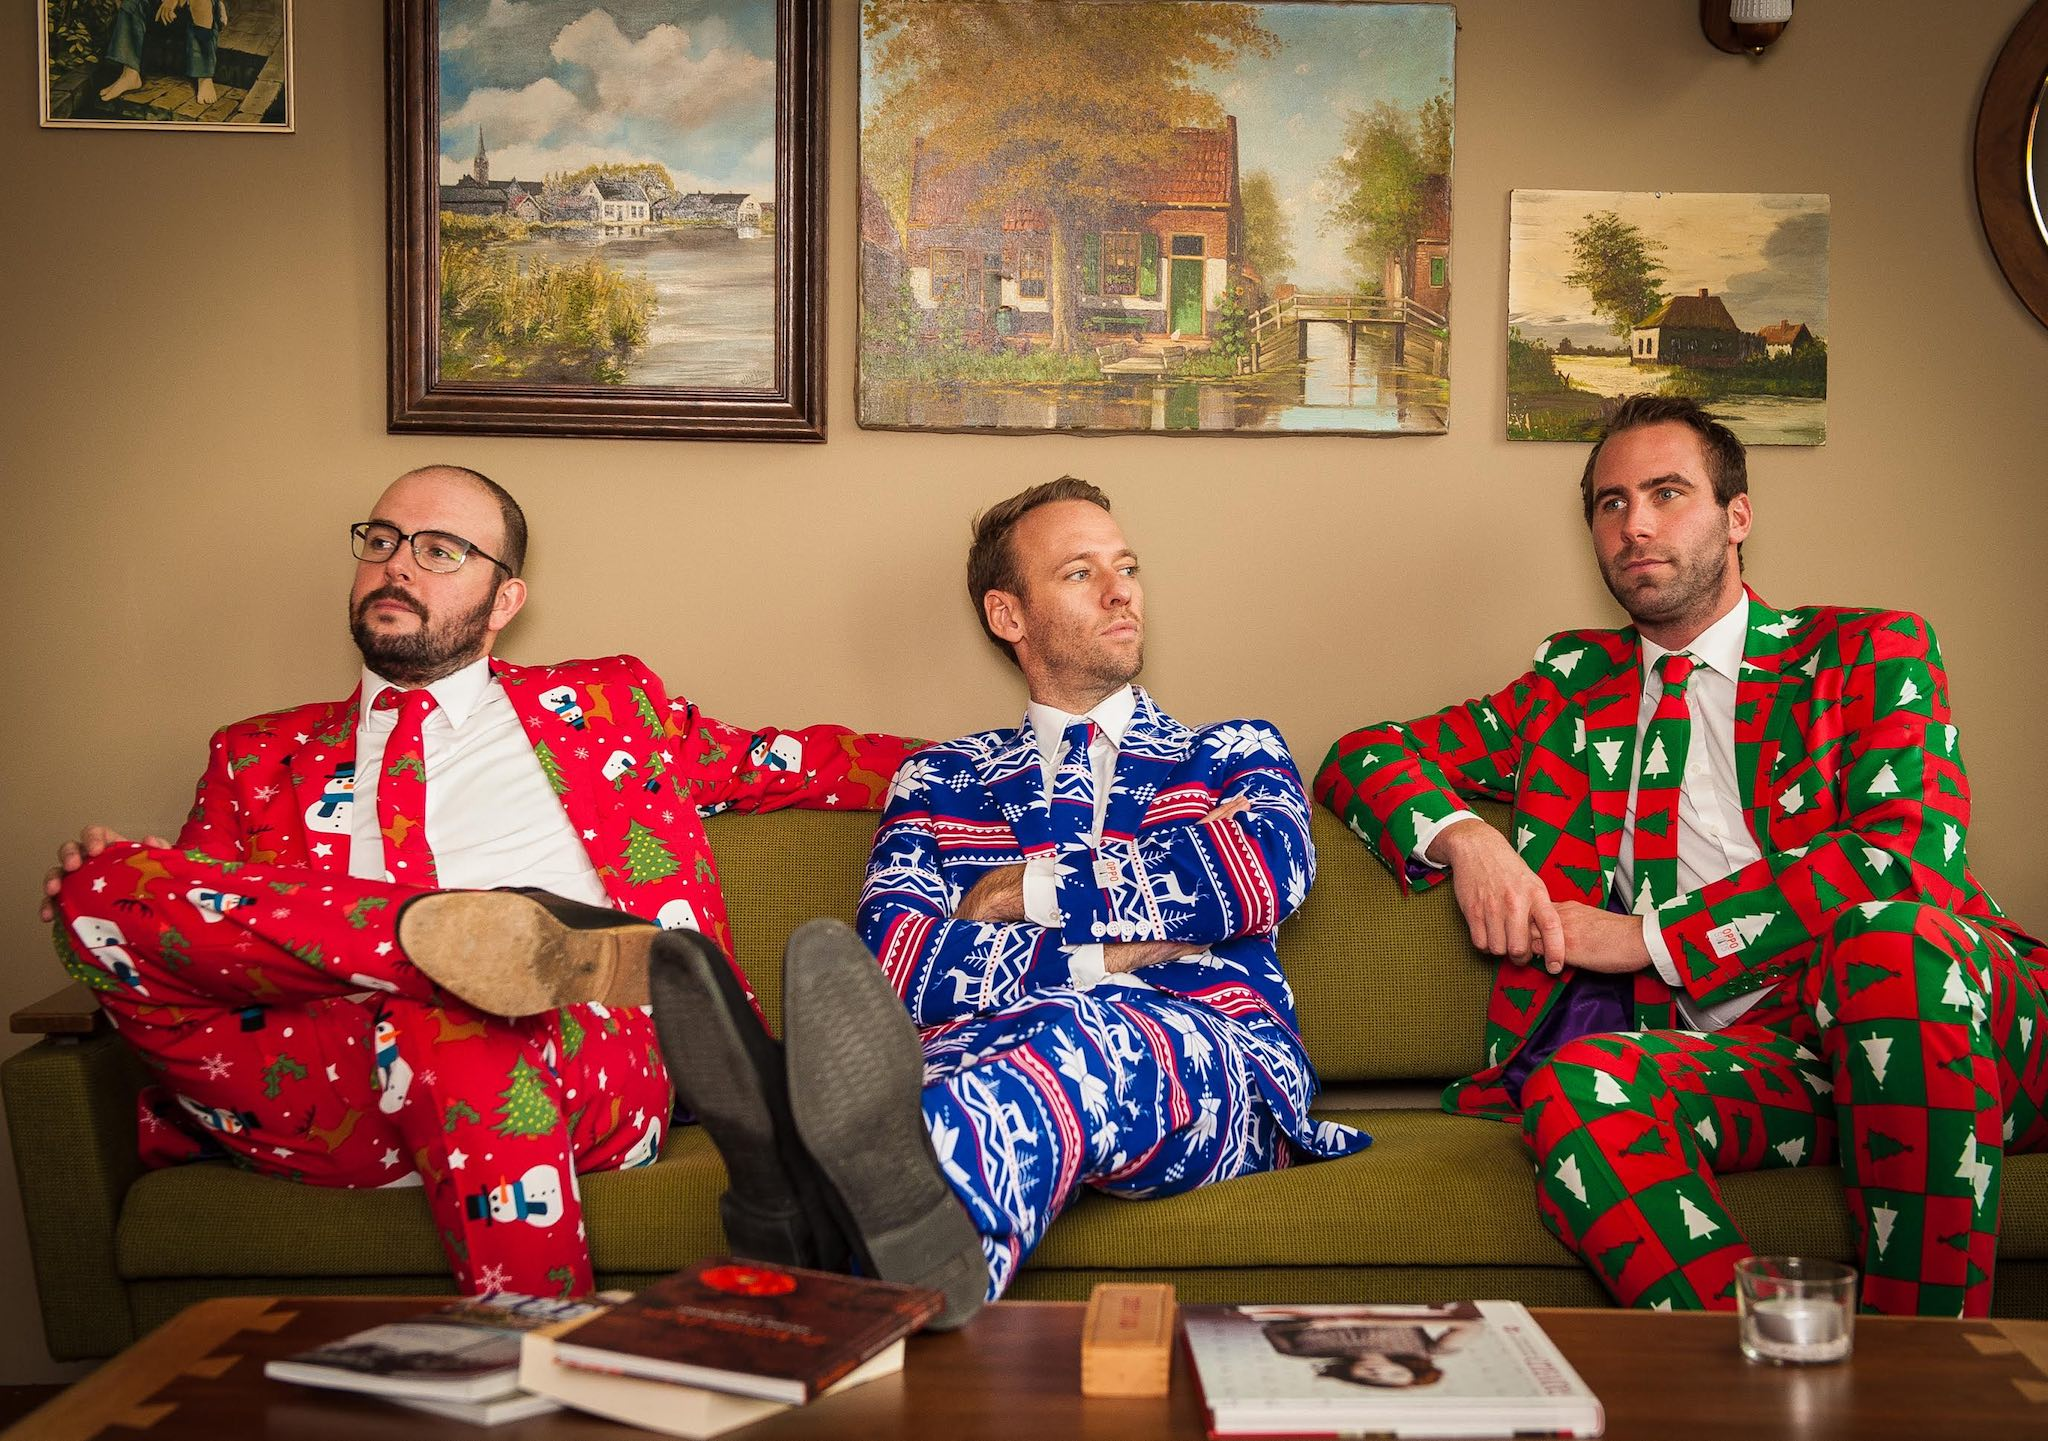 these-holiday-suits-are-better-than-a-costume-and-will-get-you-noticed3